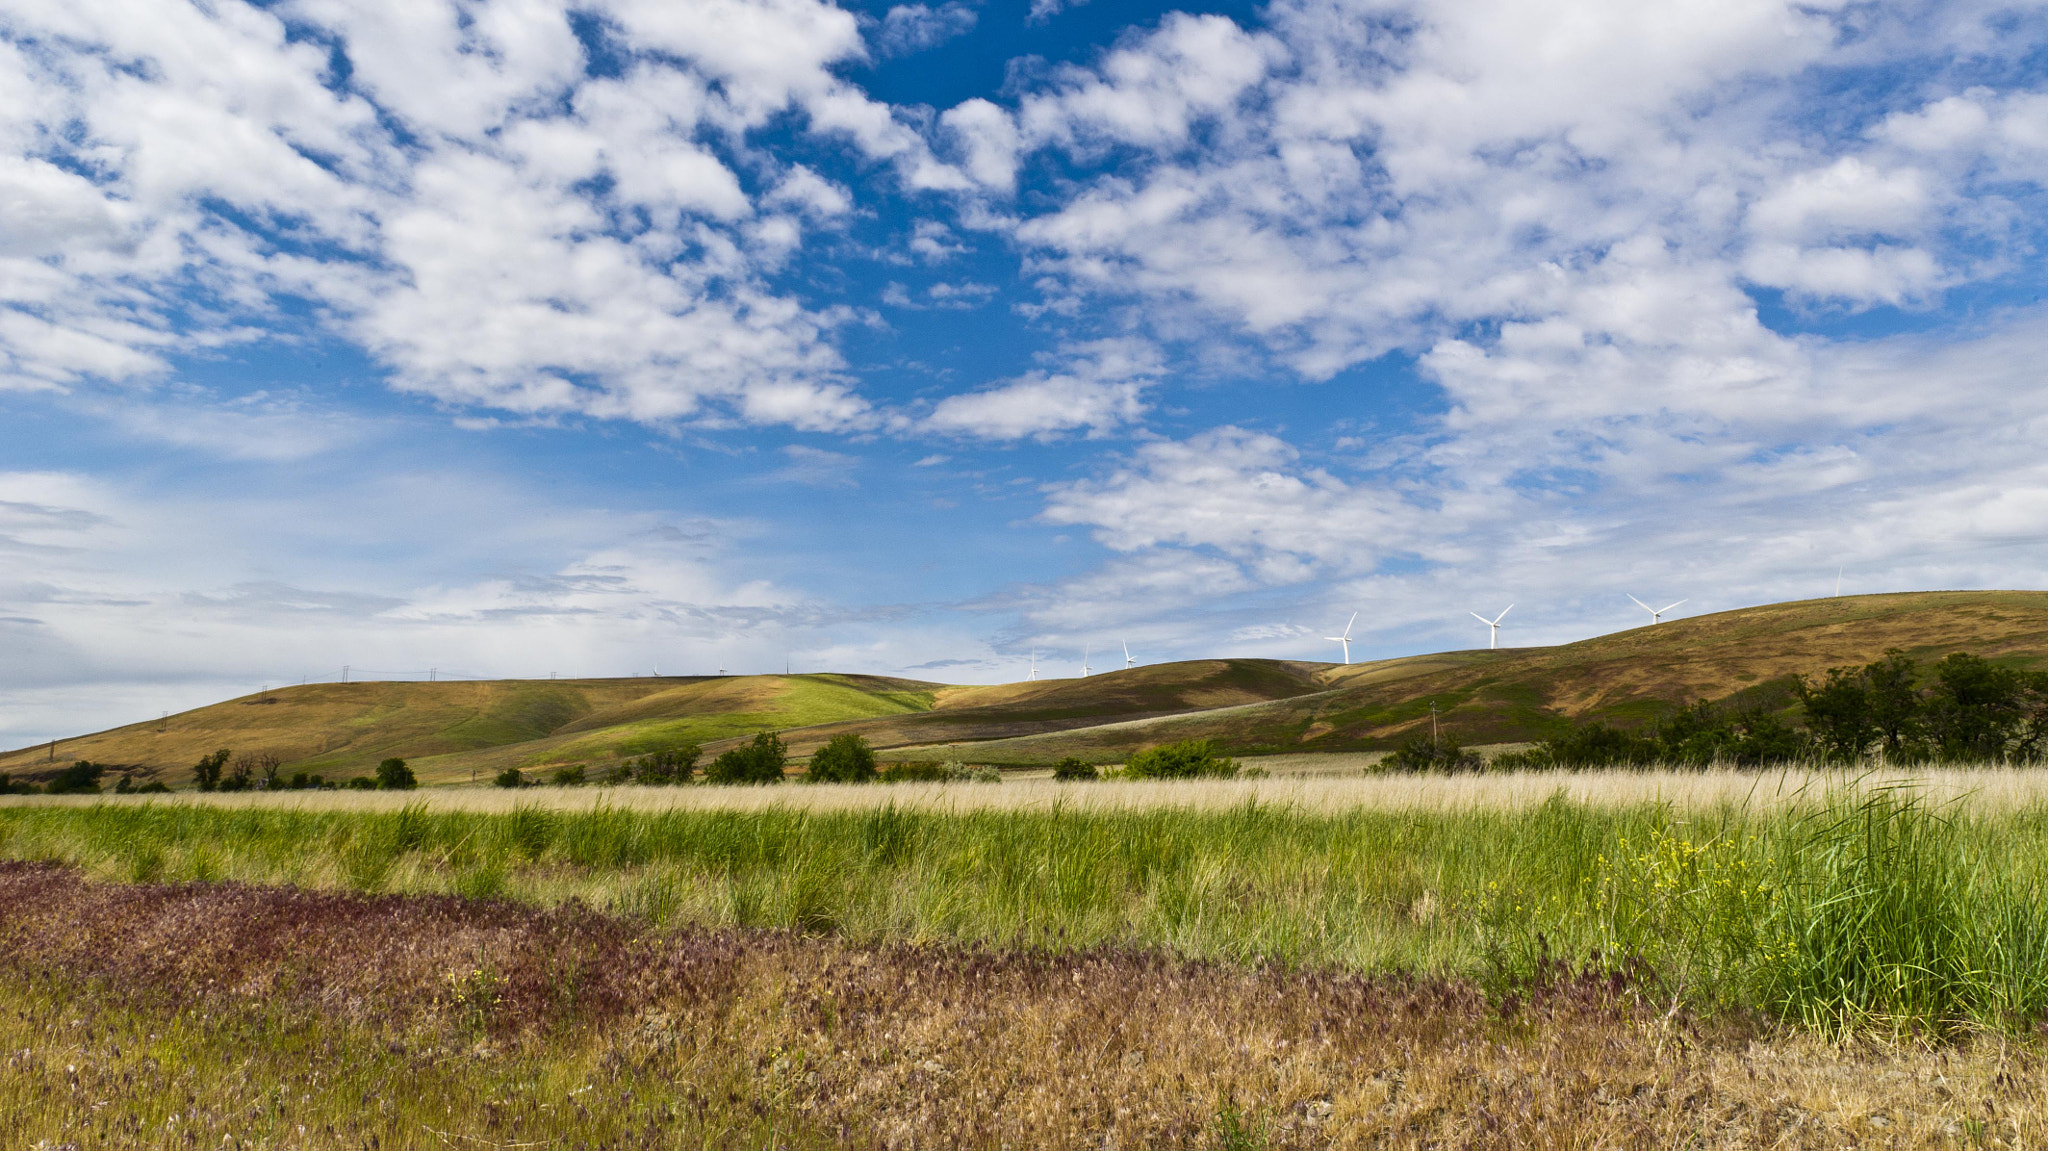 Photograph Palouse Scenic Byway Memories by Debbie Tubridy on 500px